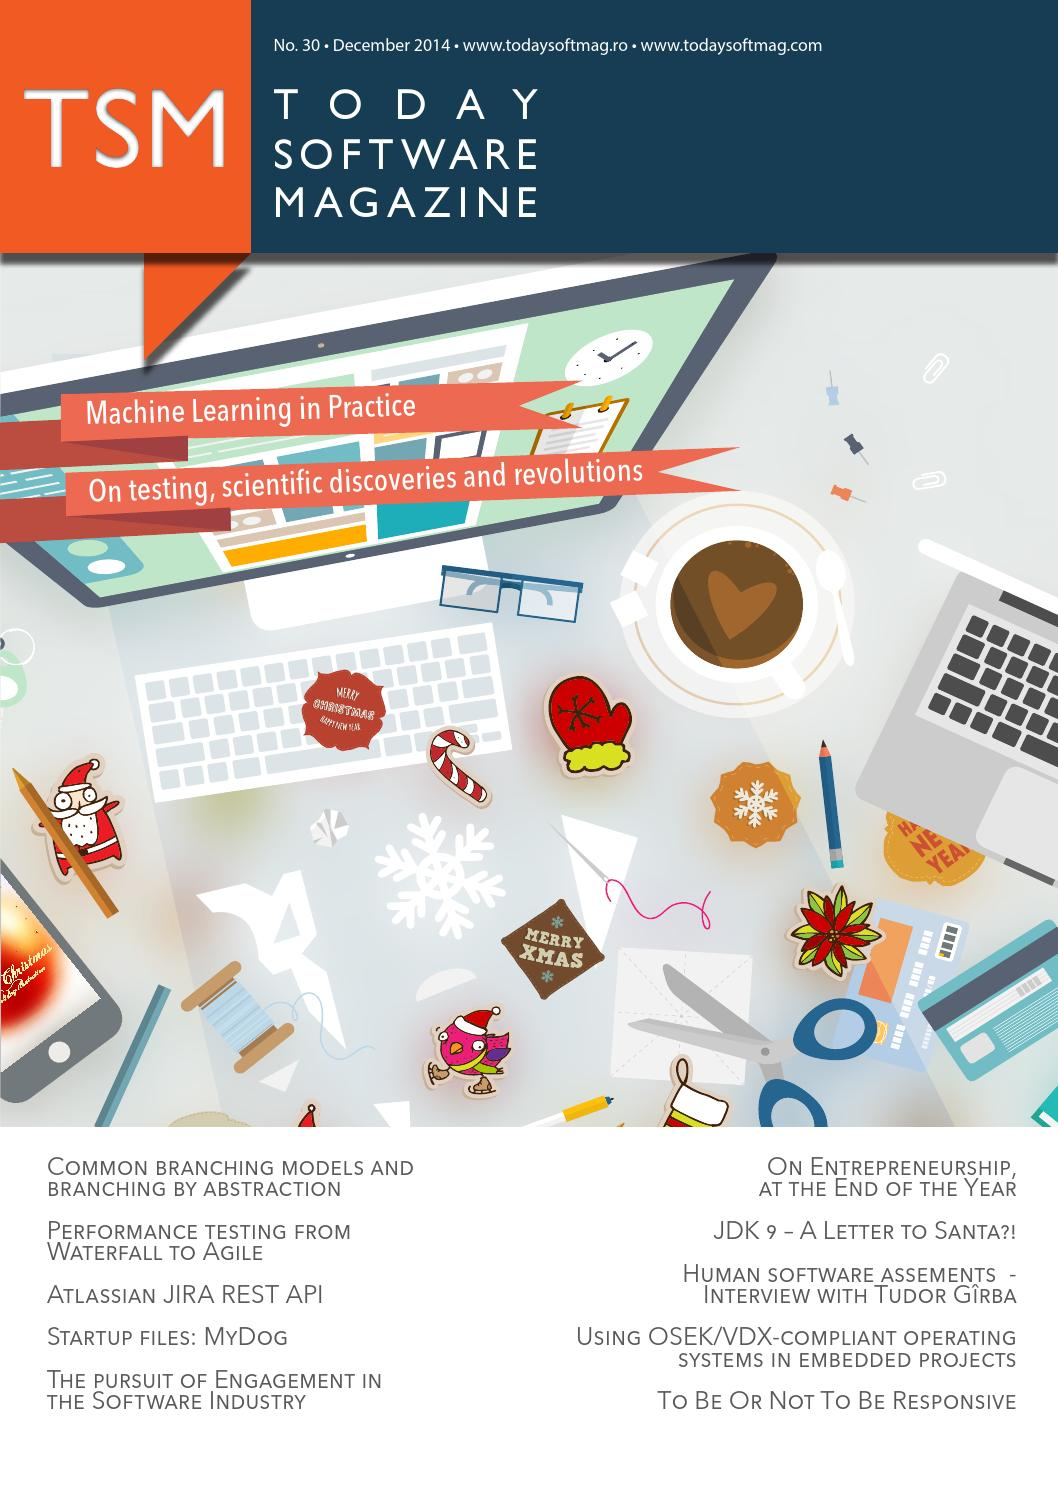 Issue 30 - December - Today Software Magazine by Today